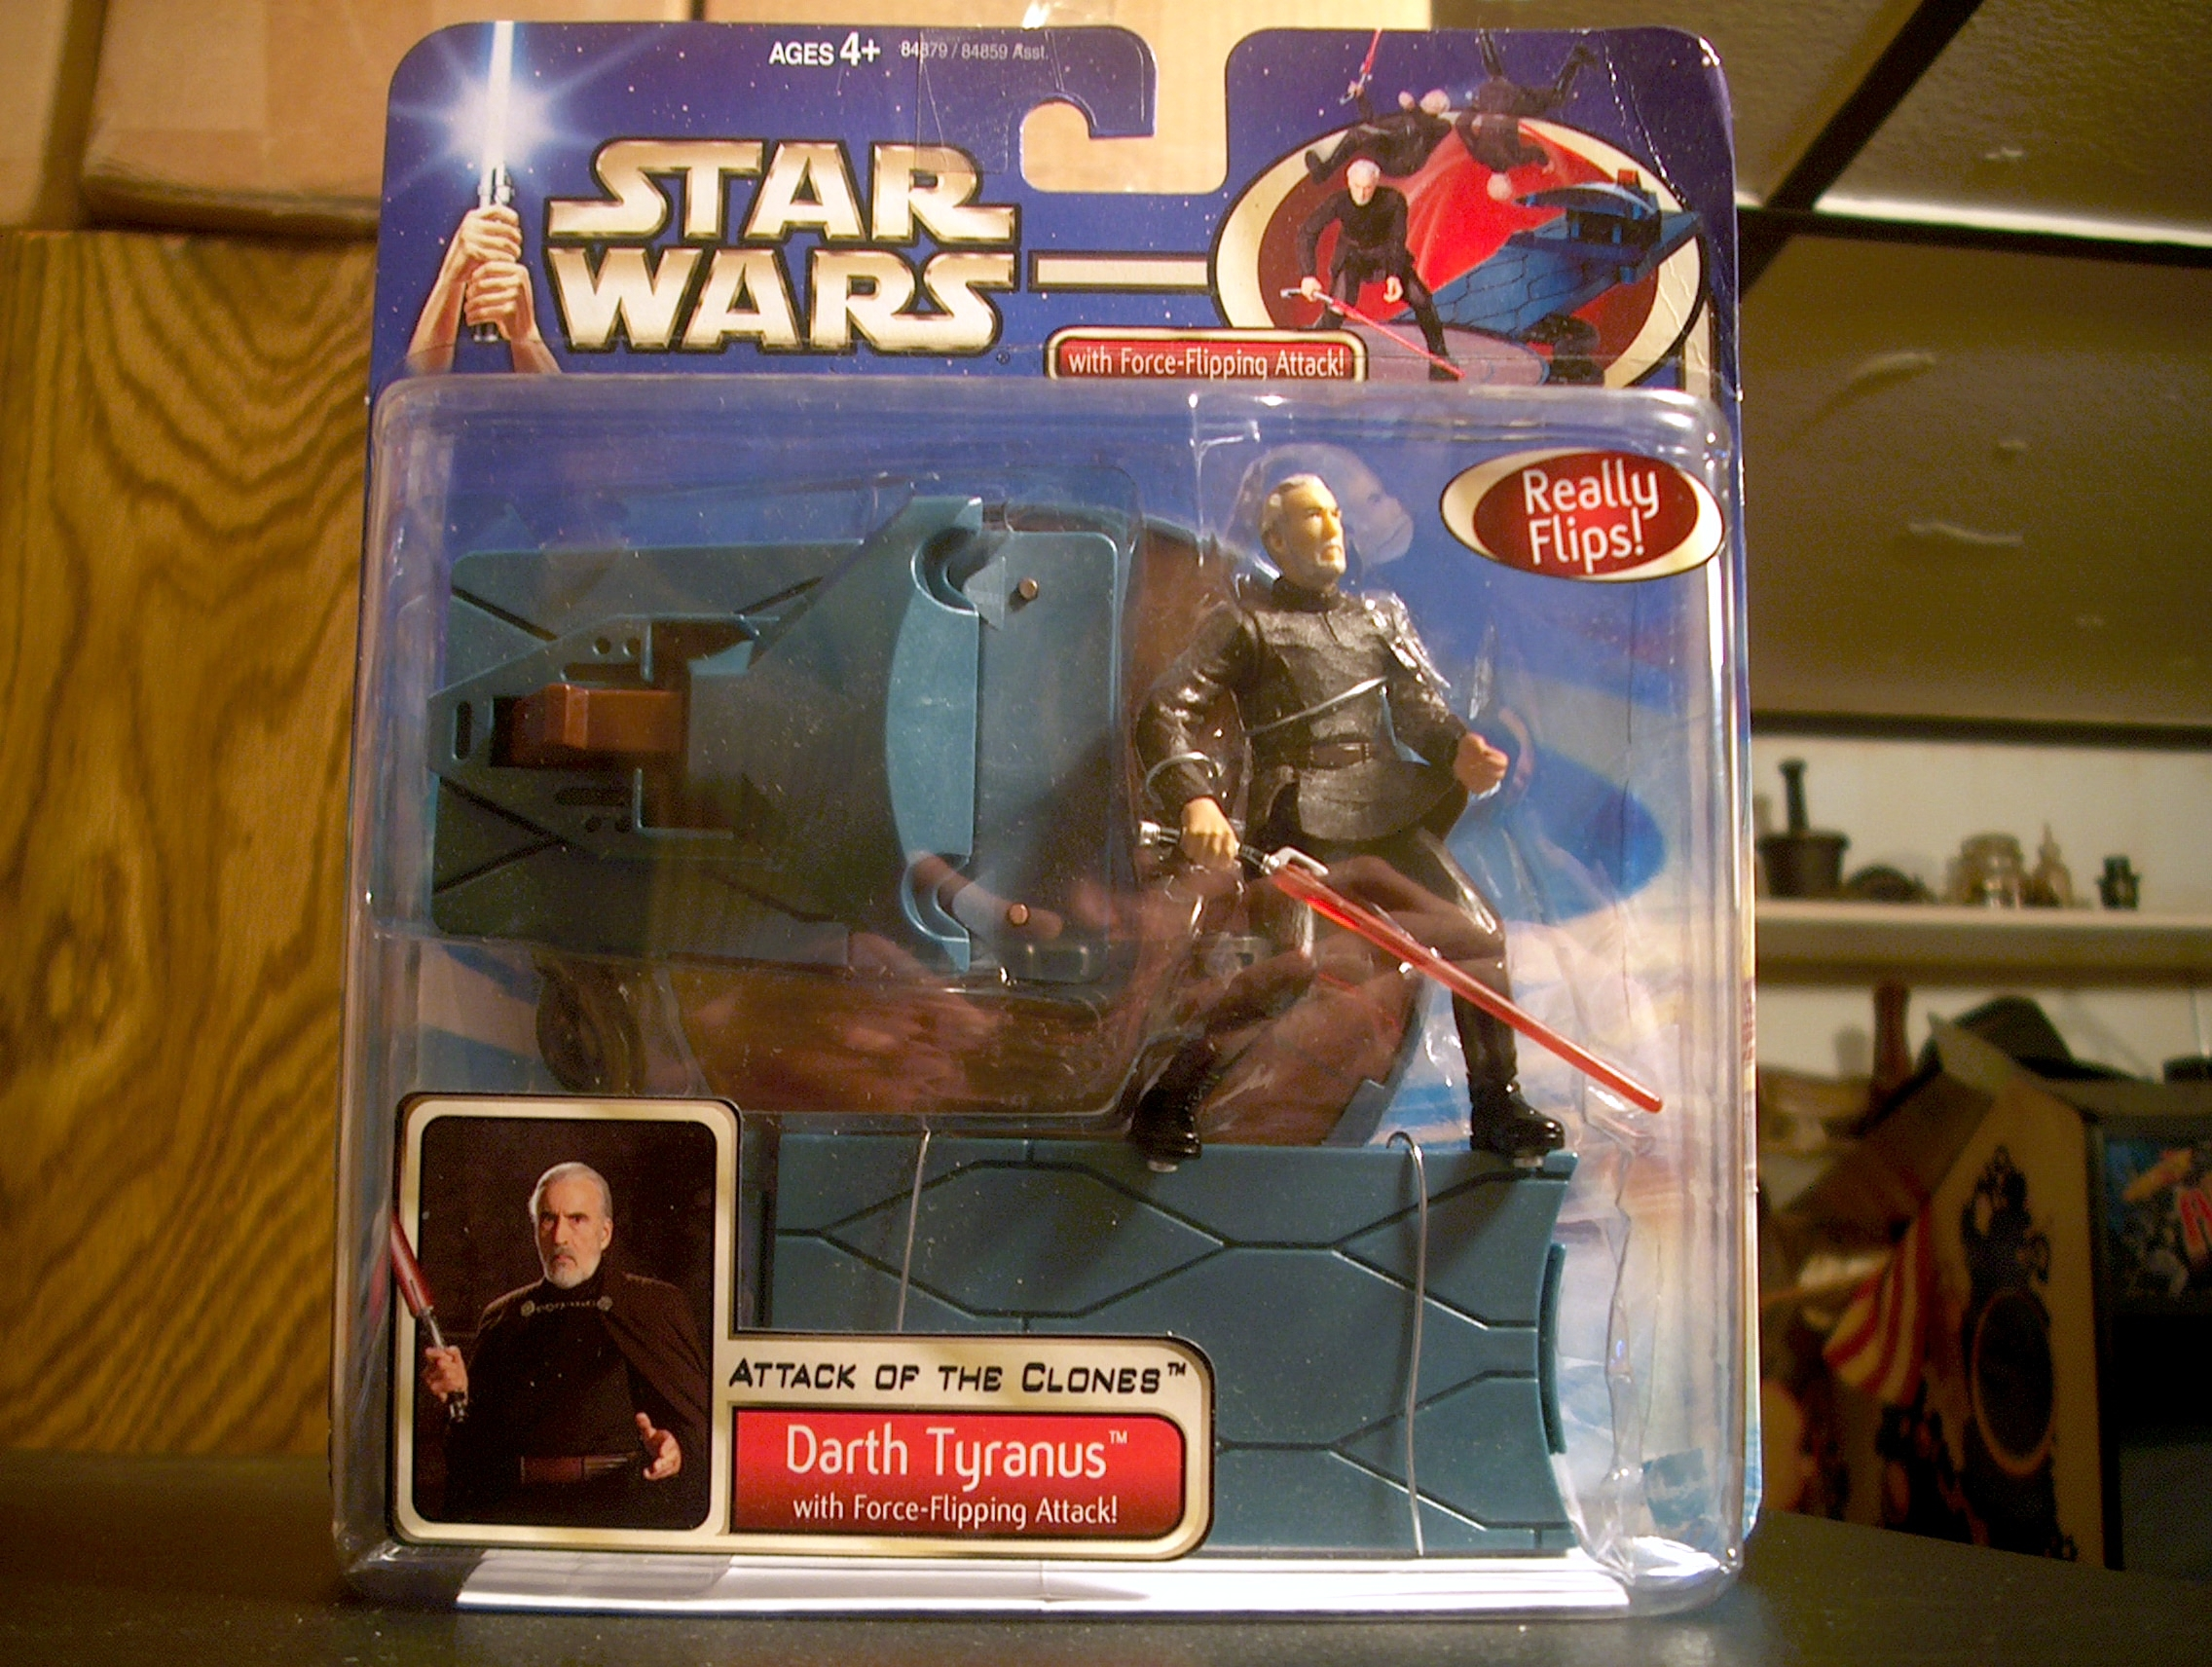 Darth Tyranus with Force-Flipping Attack!